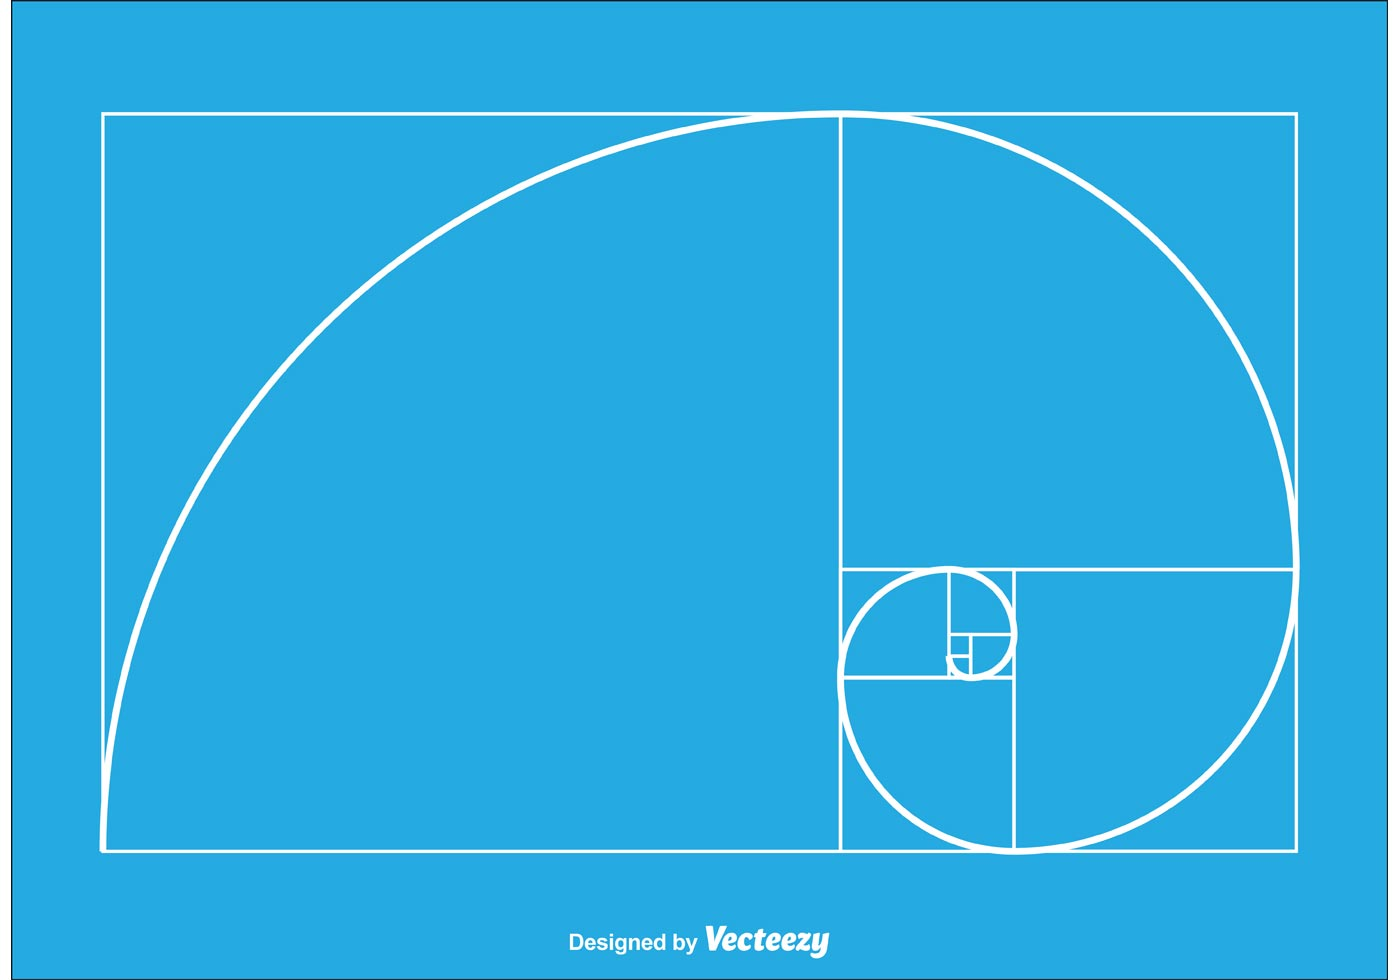 86641 Golden Ratio Vector on Square Grid